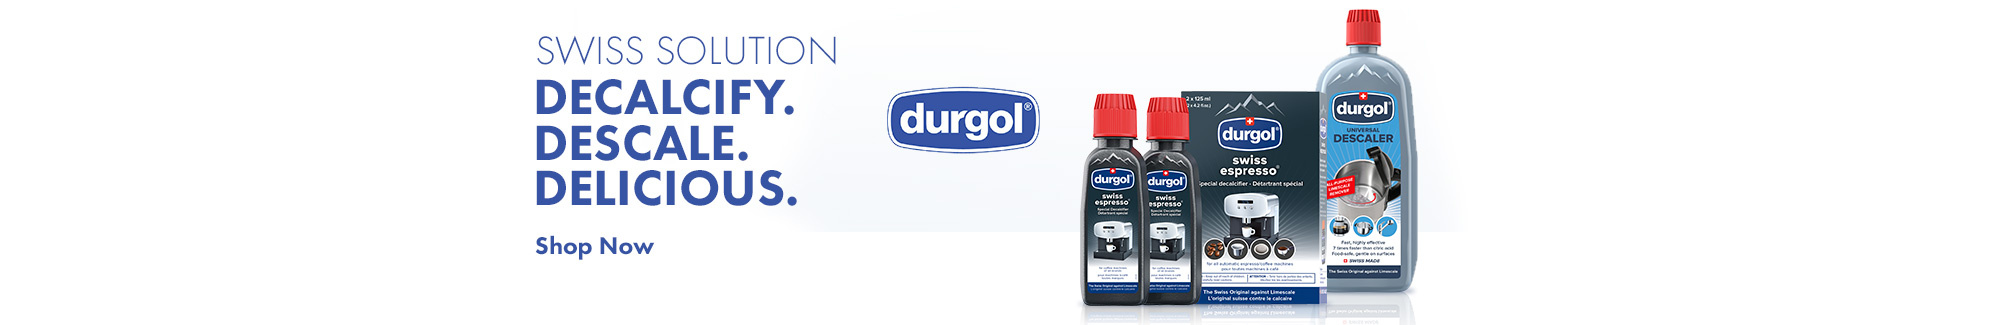 Durgol - Coffee Cleaner